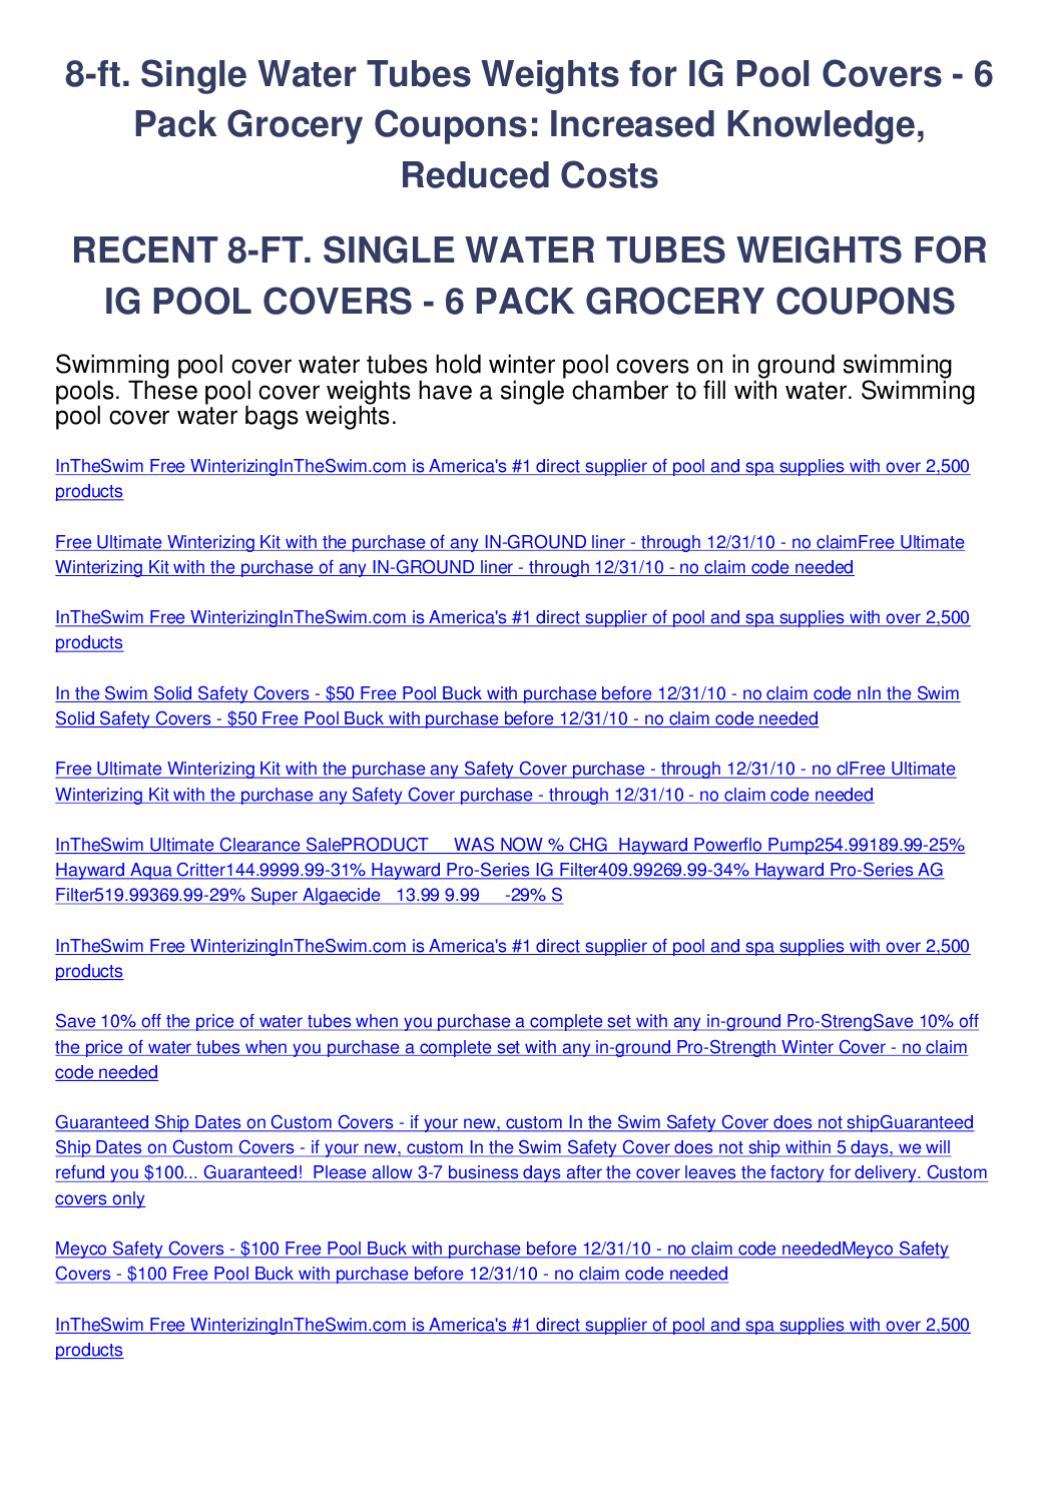 8-ft. single water tubes weights for ig pool covers - 6 pack ...